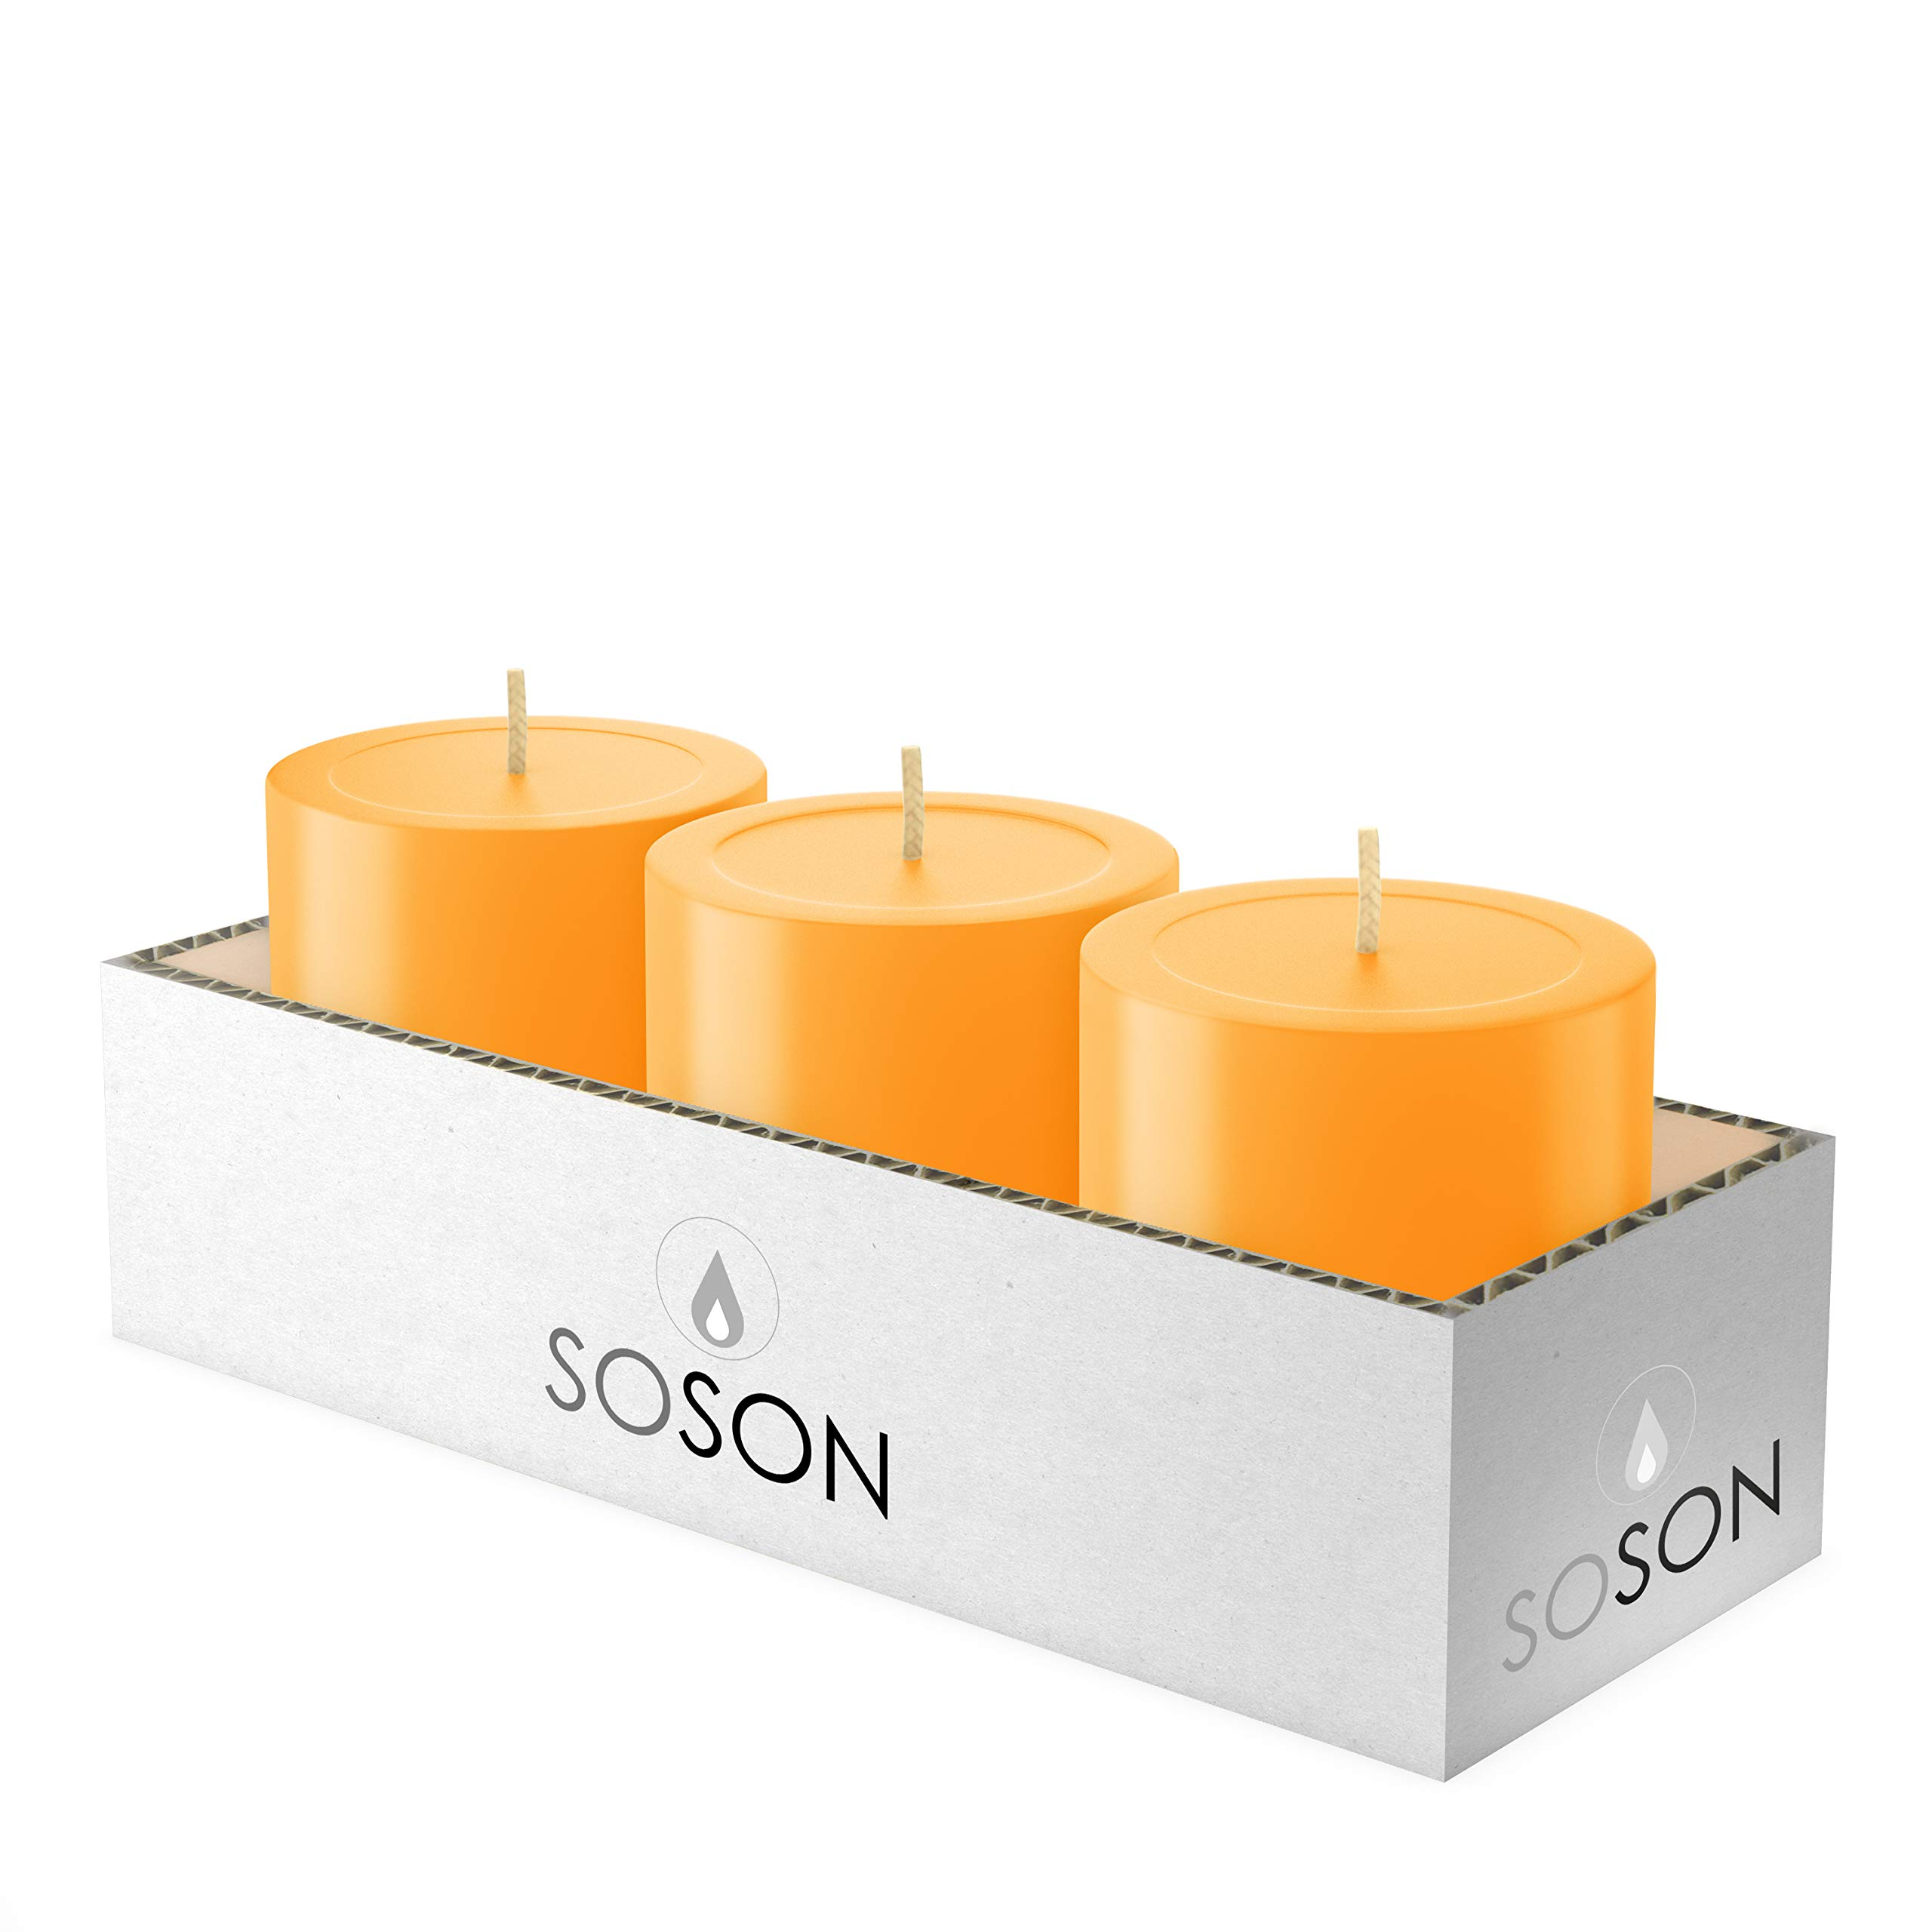 Simply Soson 3x3 Inch Apricot Orange Smooth Long Burn Pillar Candles Bulk, Unscented, Drip-Less Candle Sticks. Cotton Wick Scent Free Paraffin Wax. Slow Burning Party and Home Decoration (Pack of 3).